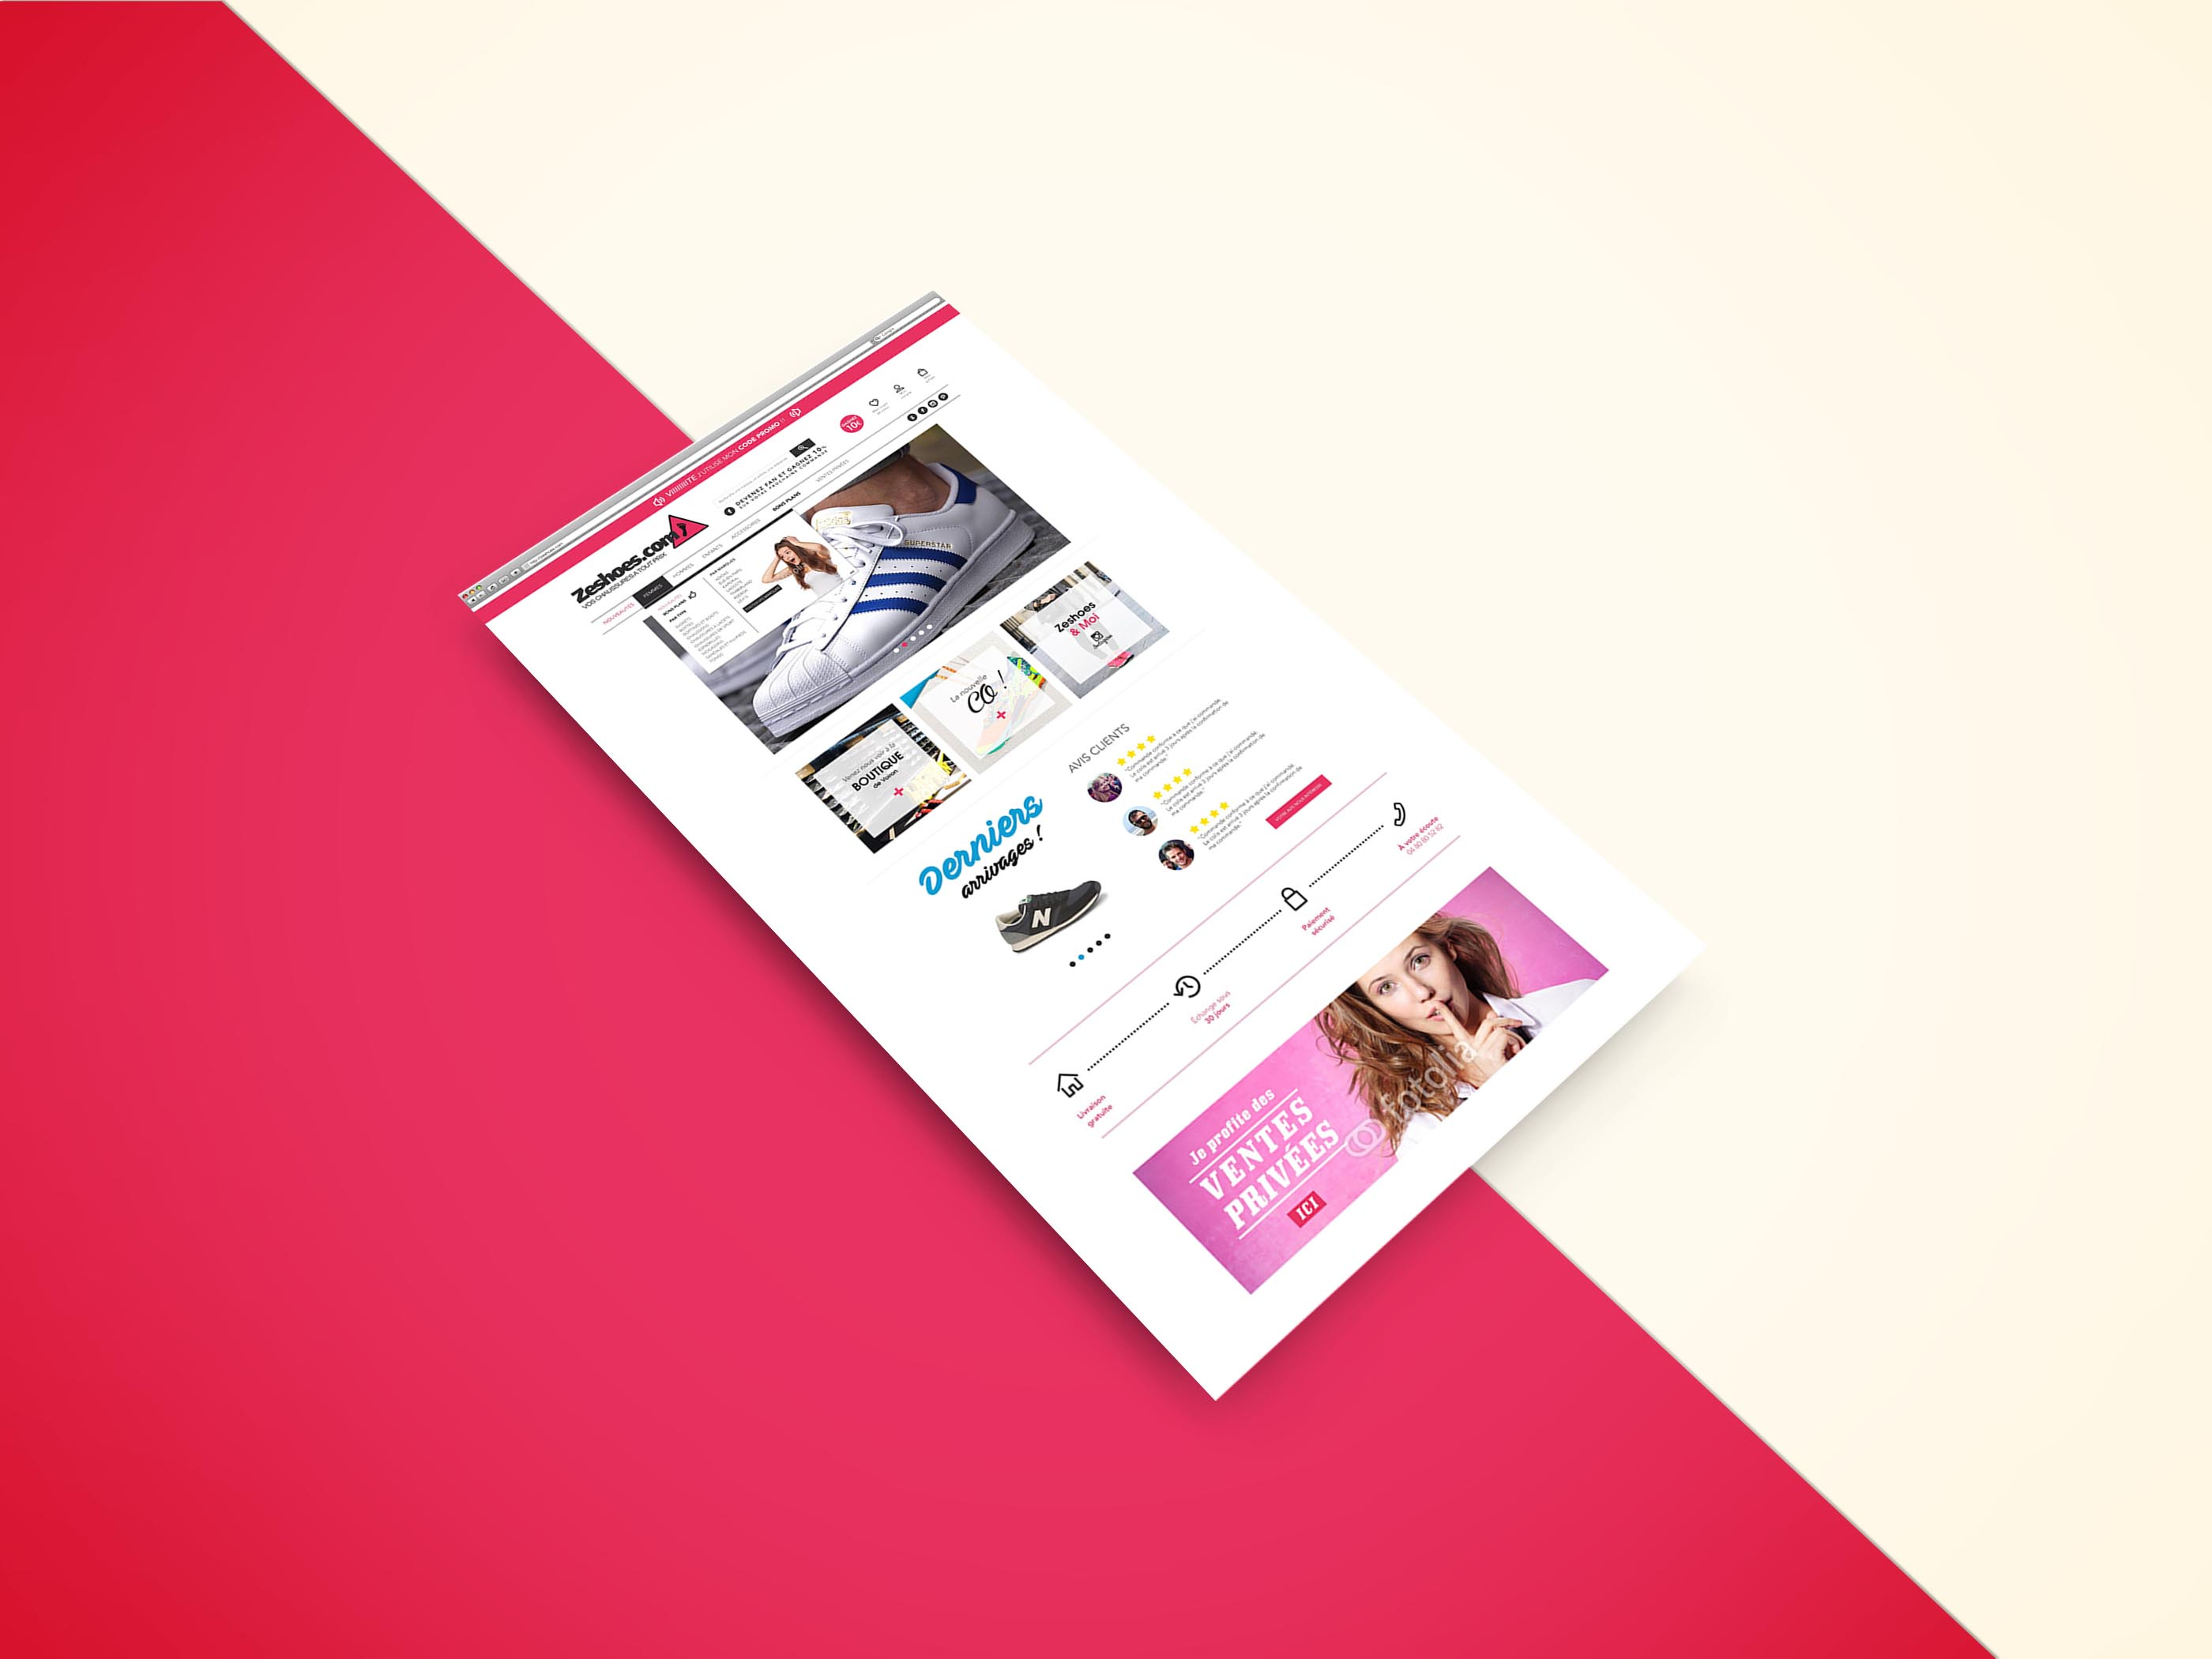 Webdesign-responsive-zeshoes-accueil